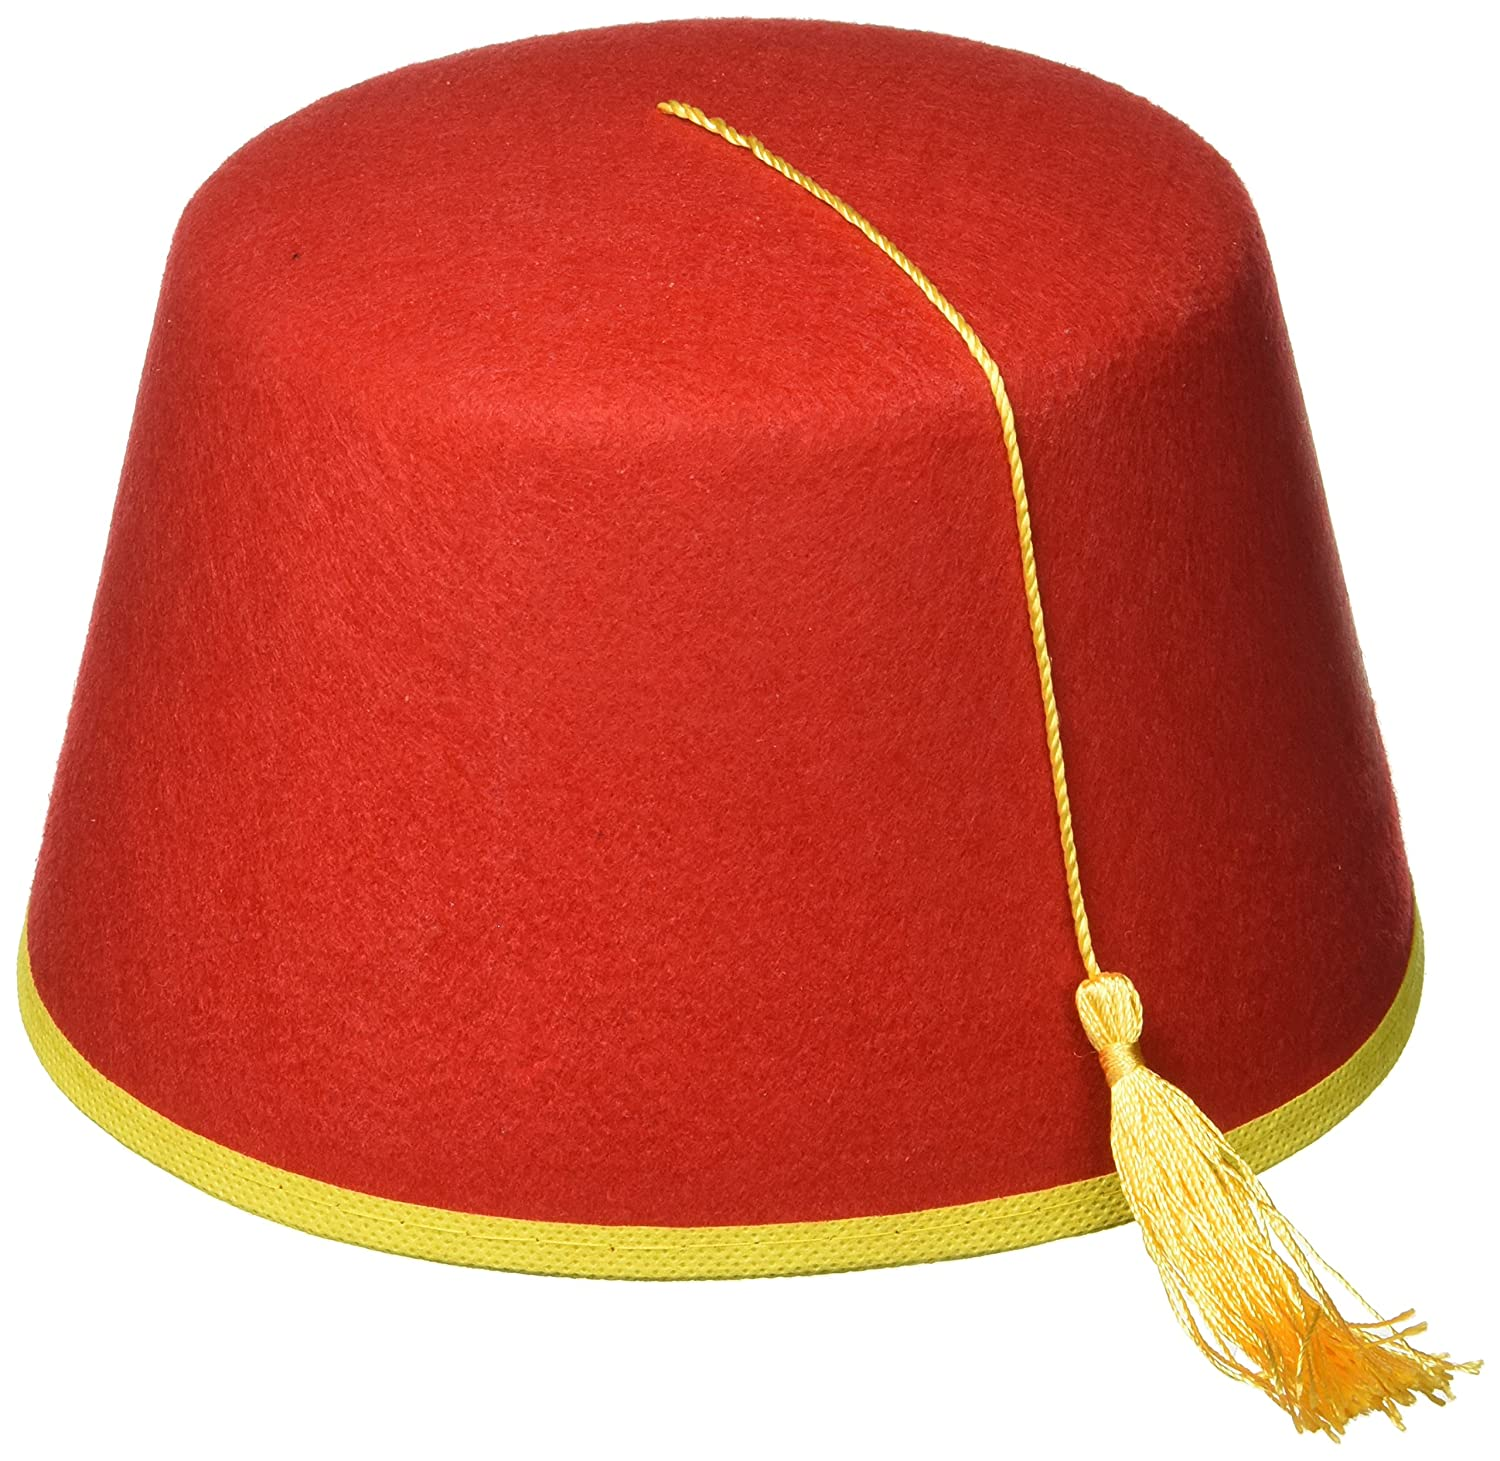 Forum Novelties, Inc Red Fez Felt Hat Red/Gold